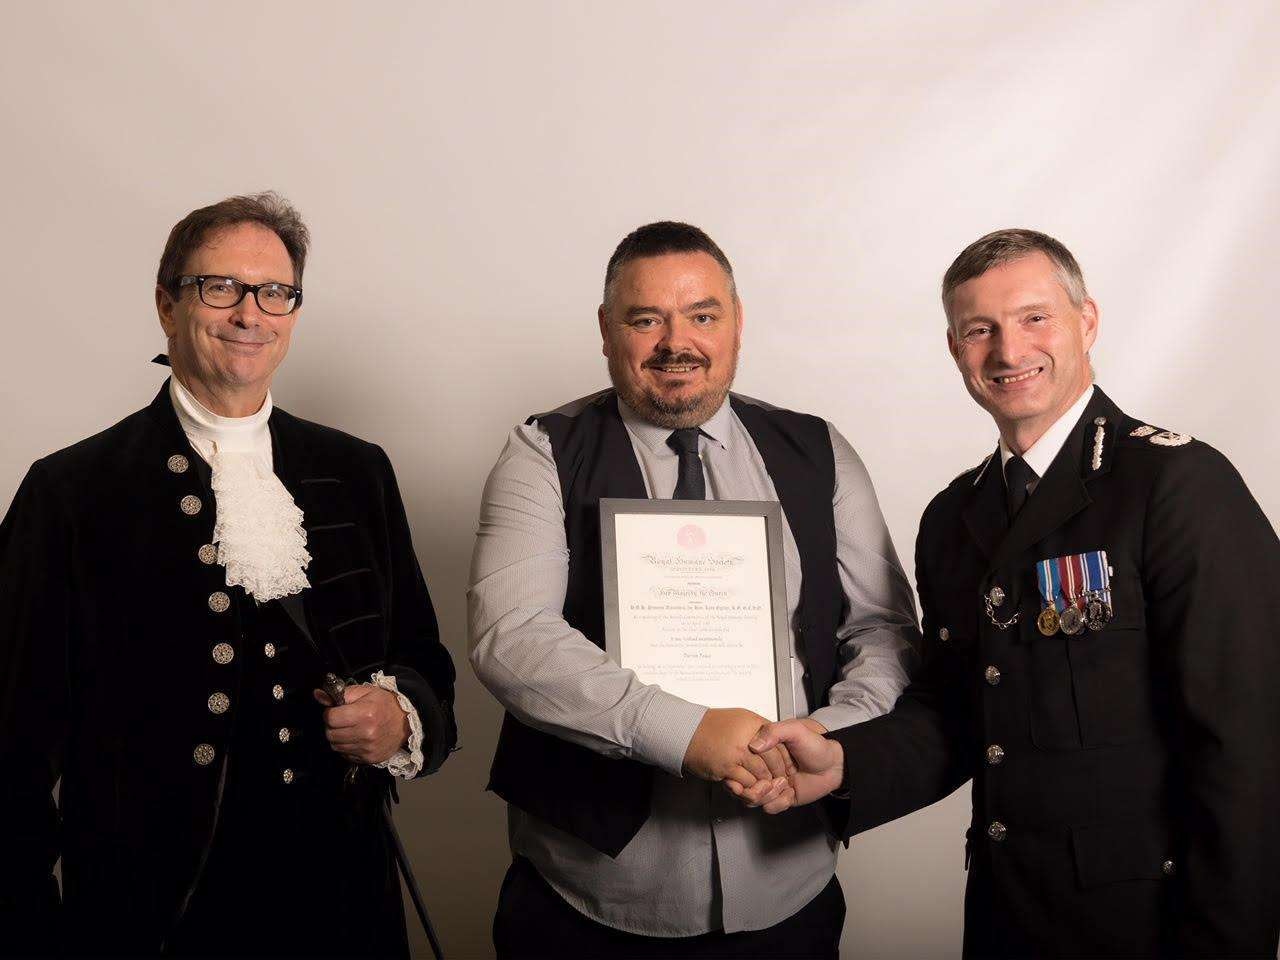 Darren Peace received his award from the High Sheriff of Lincolnshire at a ceremony which was also attended by the Chief Constable of Lincolnshire Police